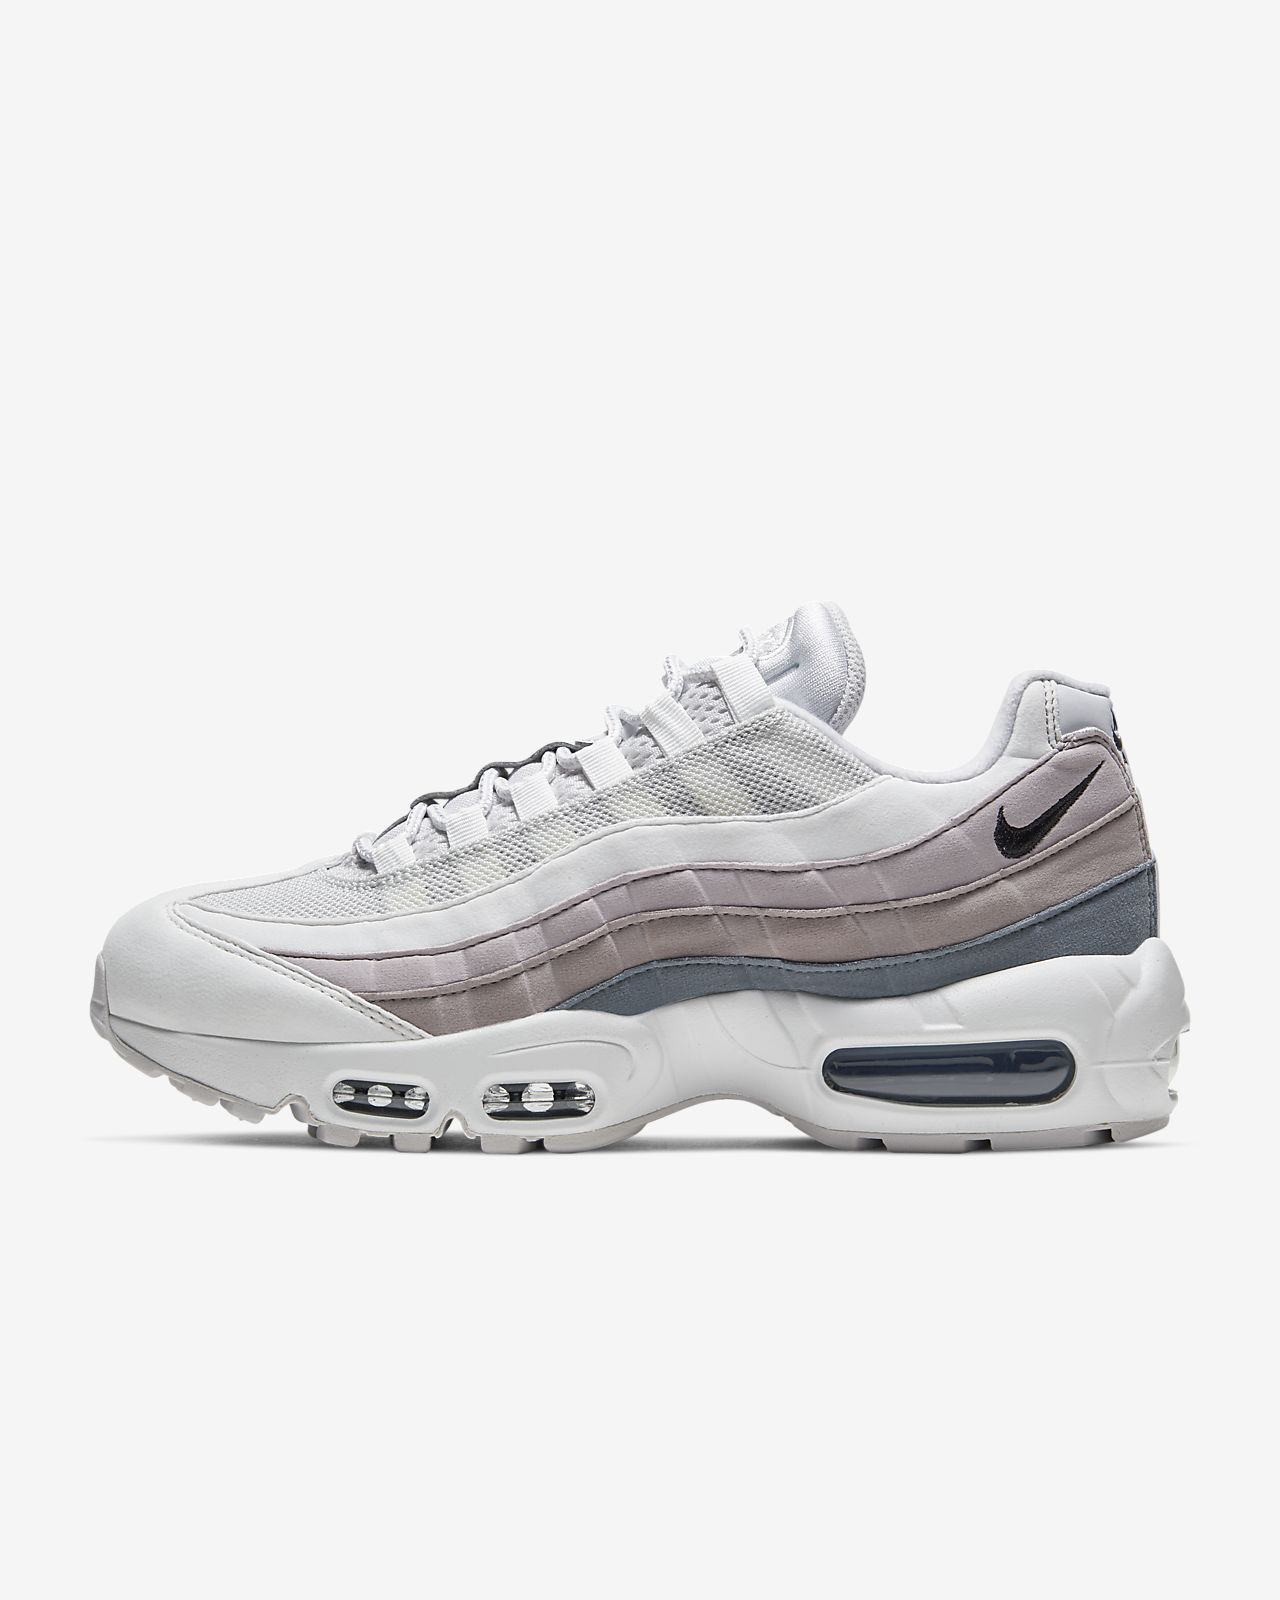 outlet store 6822a 5c8c8 Nike Air Max 95 Women s Shoe. Nike.com